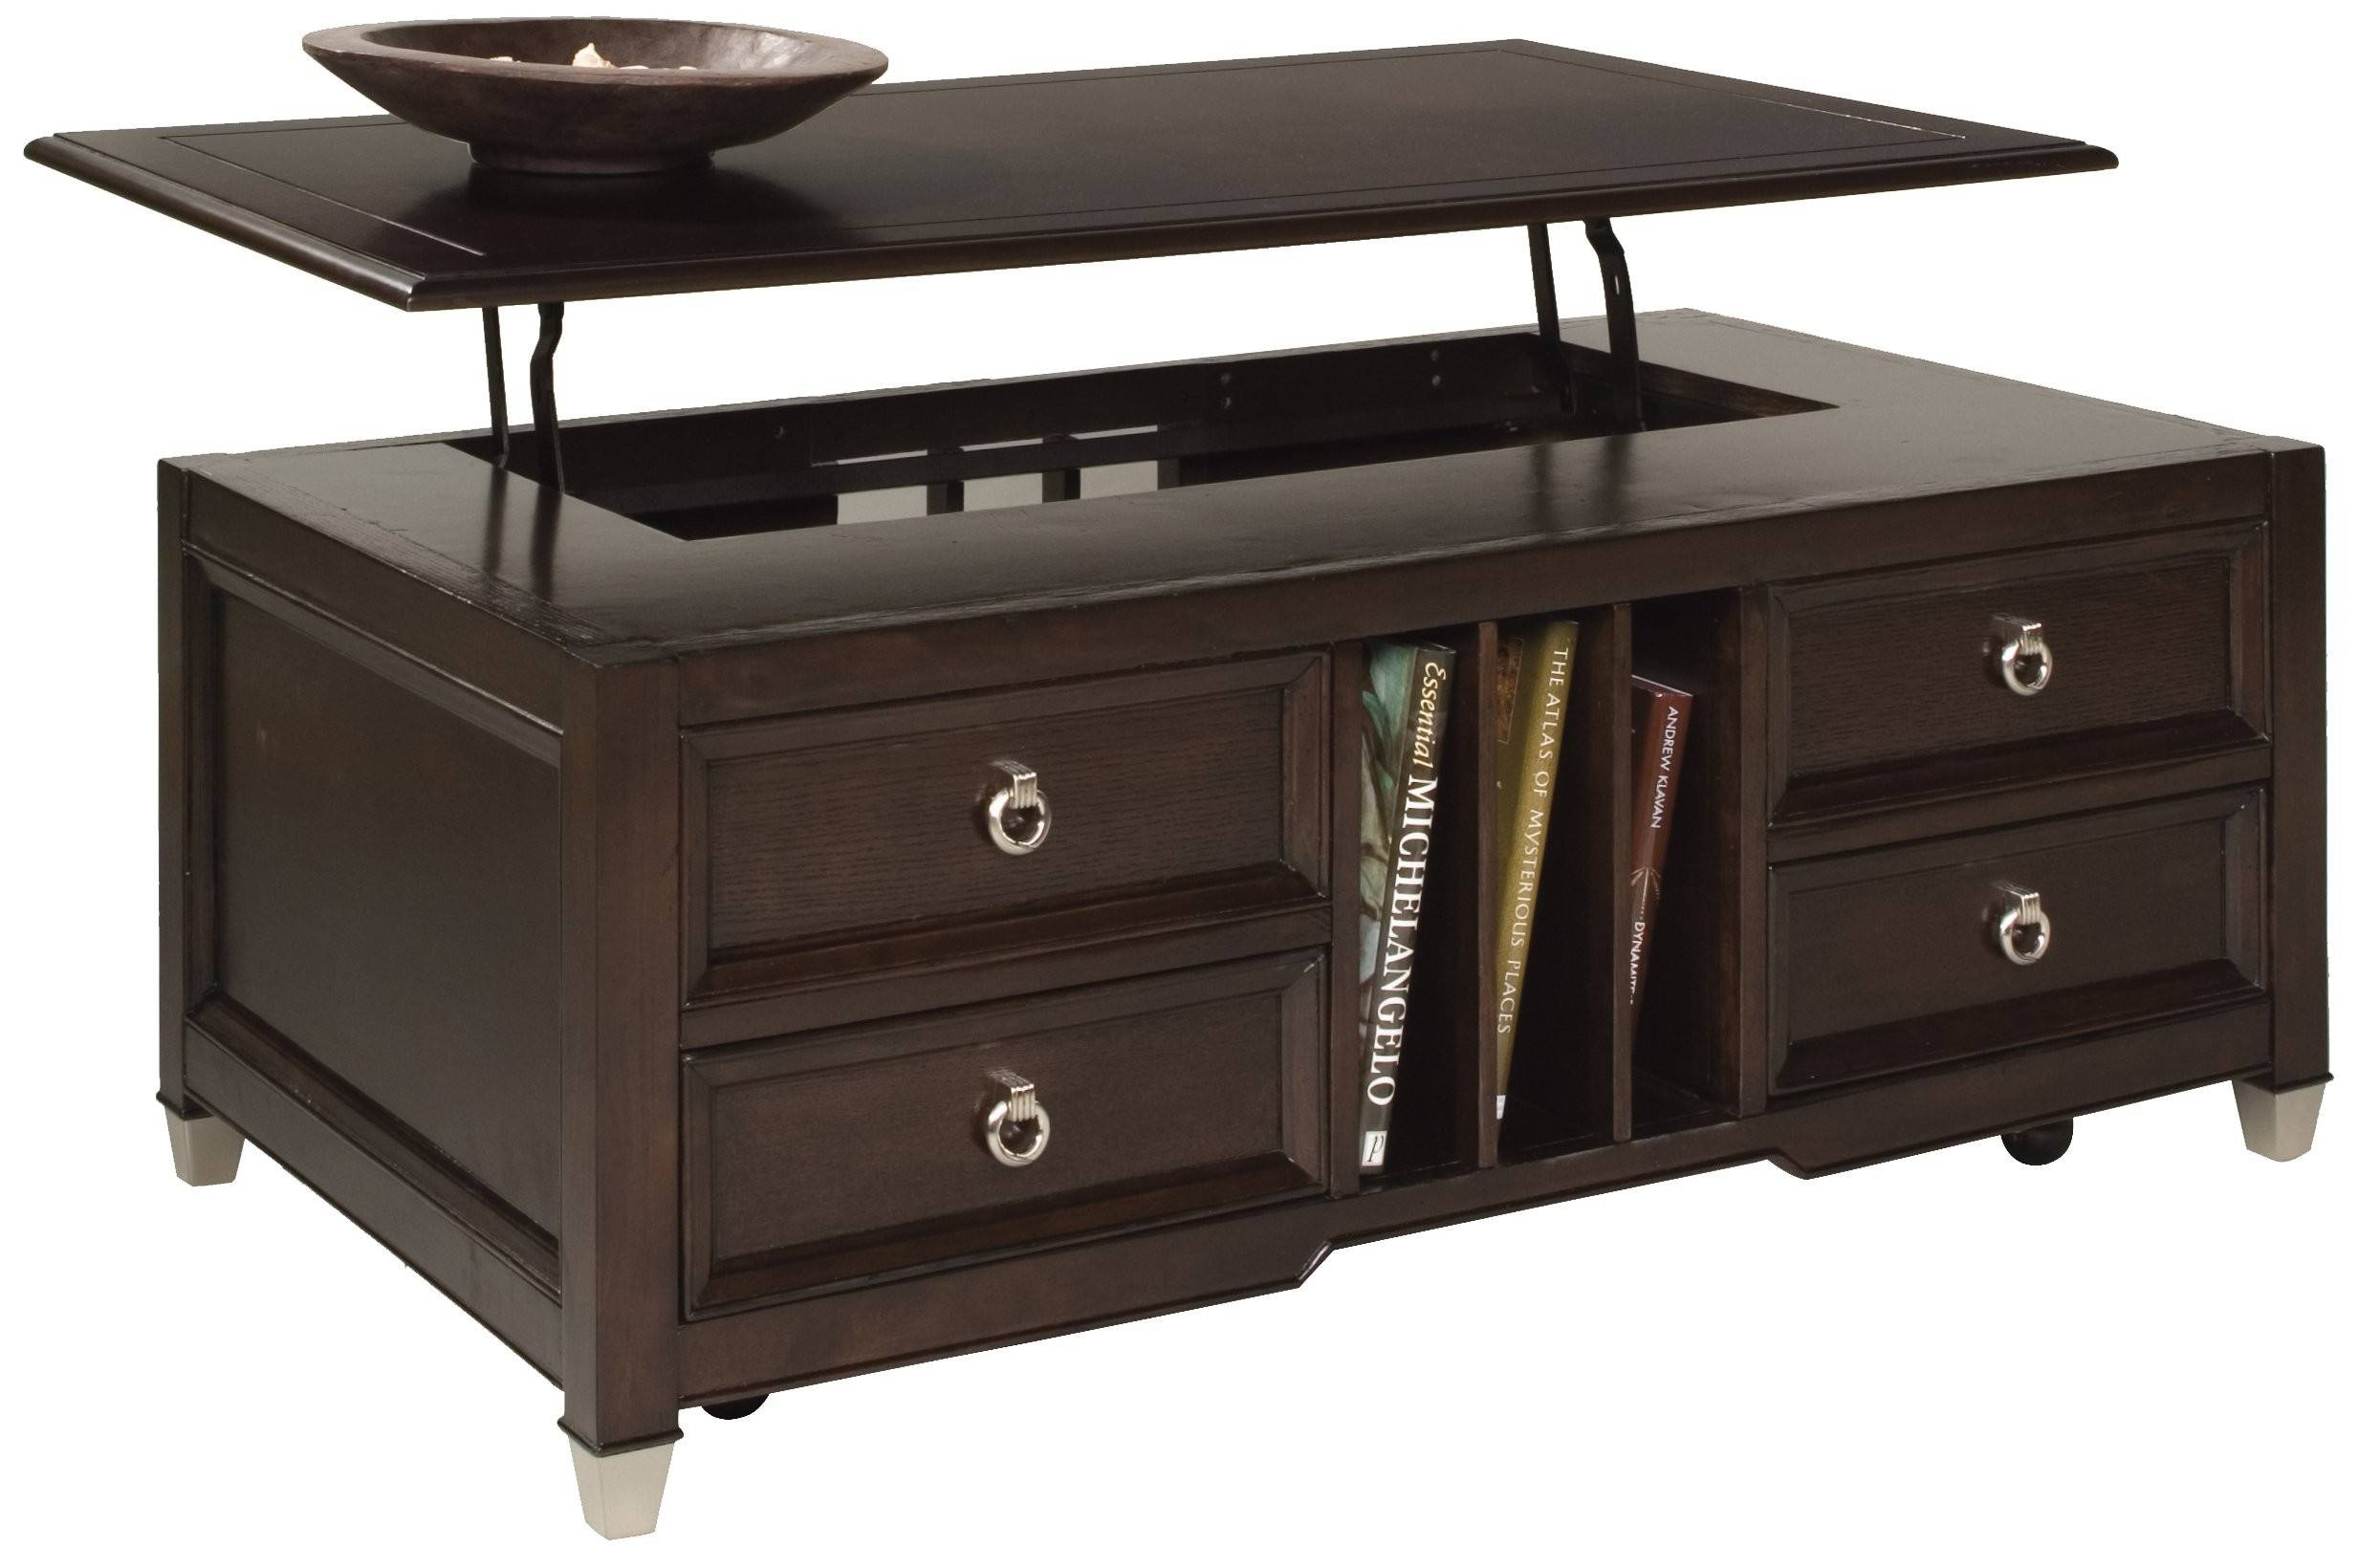 Small Coffee Tables That Lift Up | Decorative Table Decoration throughout Coffee Tables With Lift Up Top (Image 24 of 30)